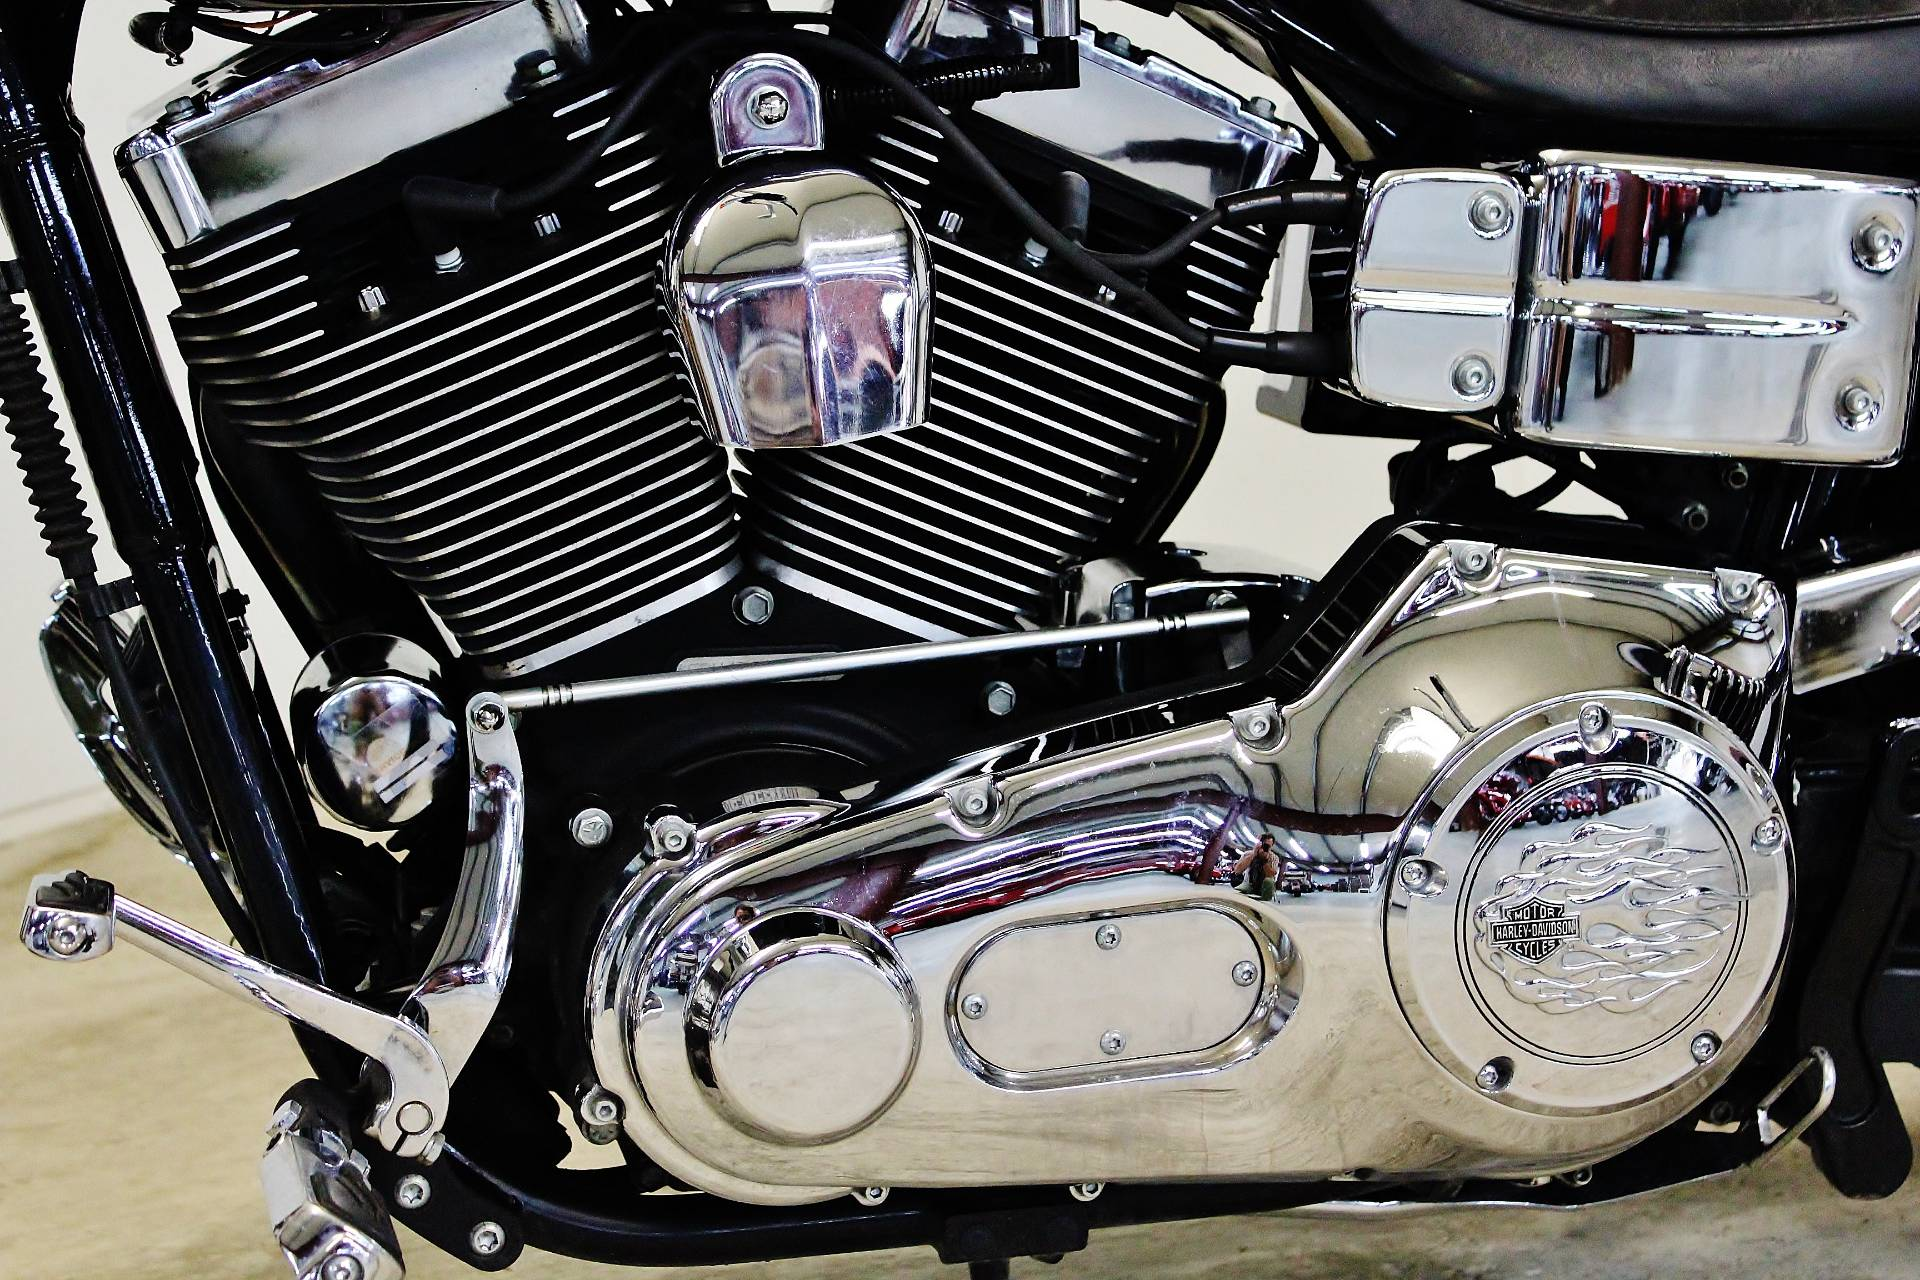 2004 Harley-Davidson FXDWG/FXDWGI Dyna Wide Glide® in Pittsfield, Massachusetts